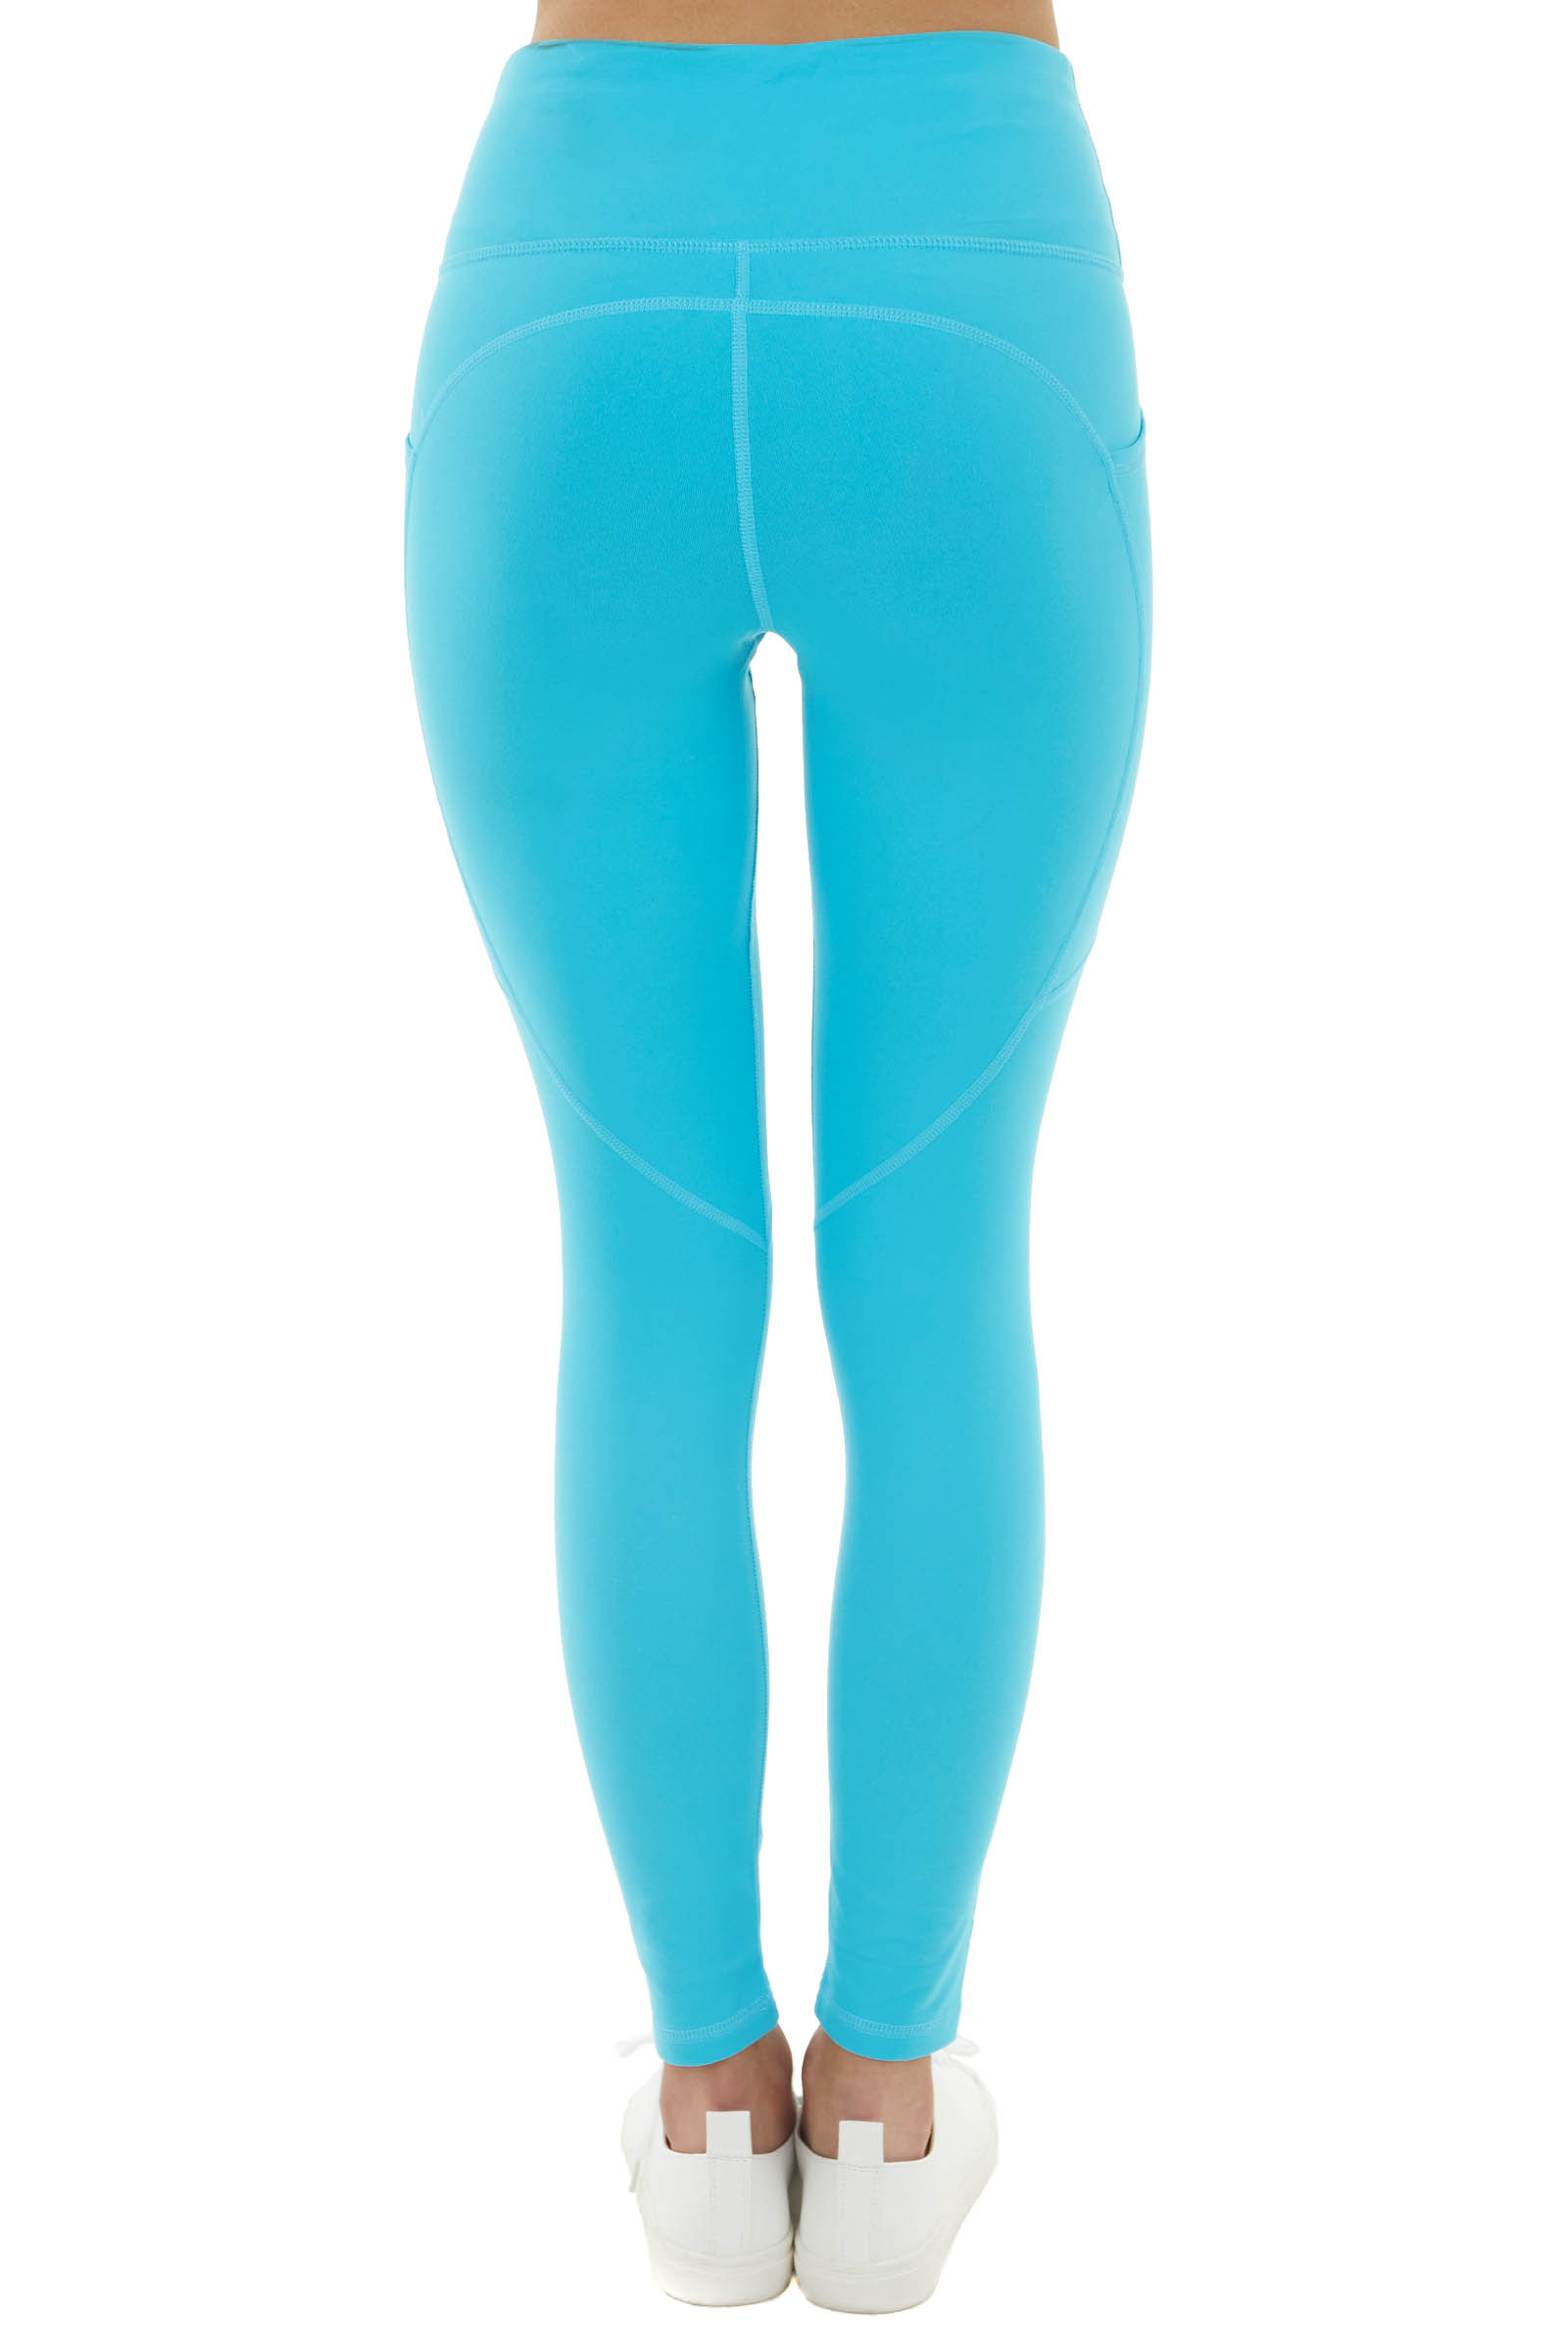 Turquoise High Waisted Leggings with Side Pockets